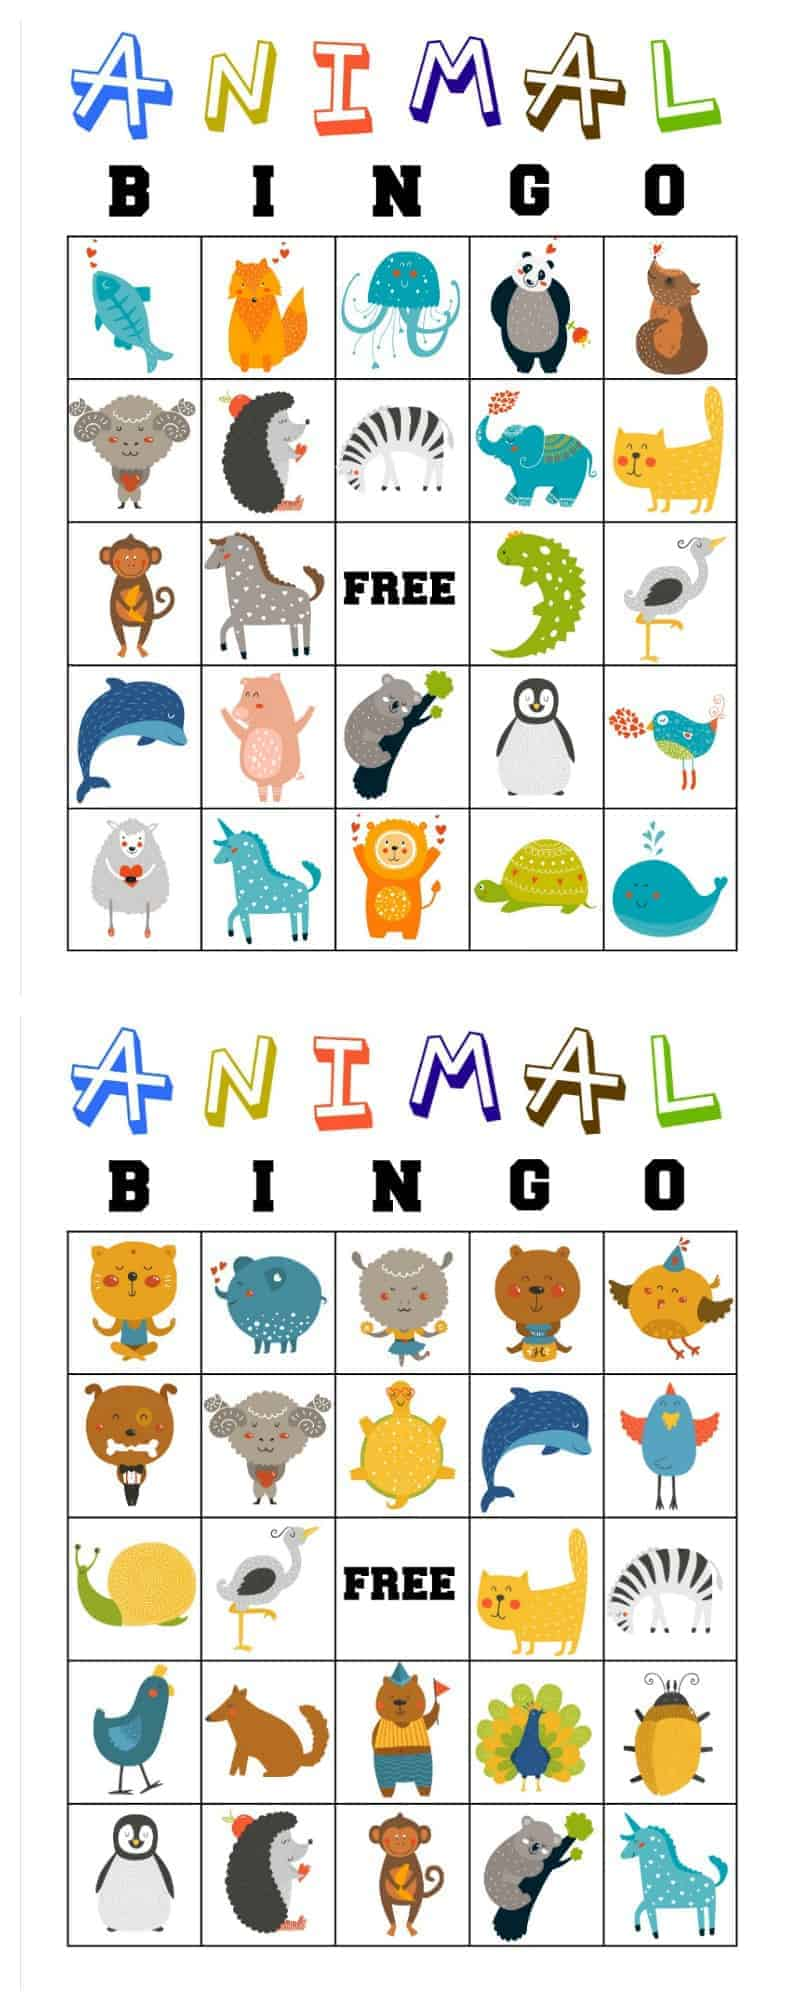 photograph about Printable Bingo for Kids called Free of charge Printable Animal Bingo Playing cards for Babies and Preschoolers